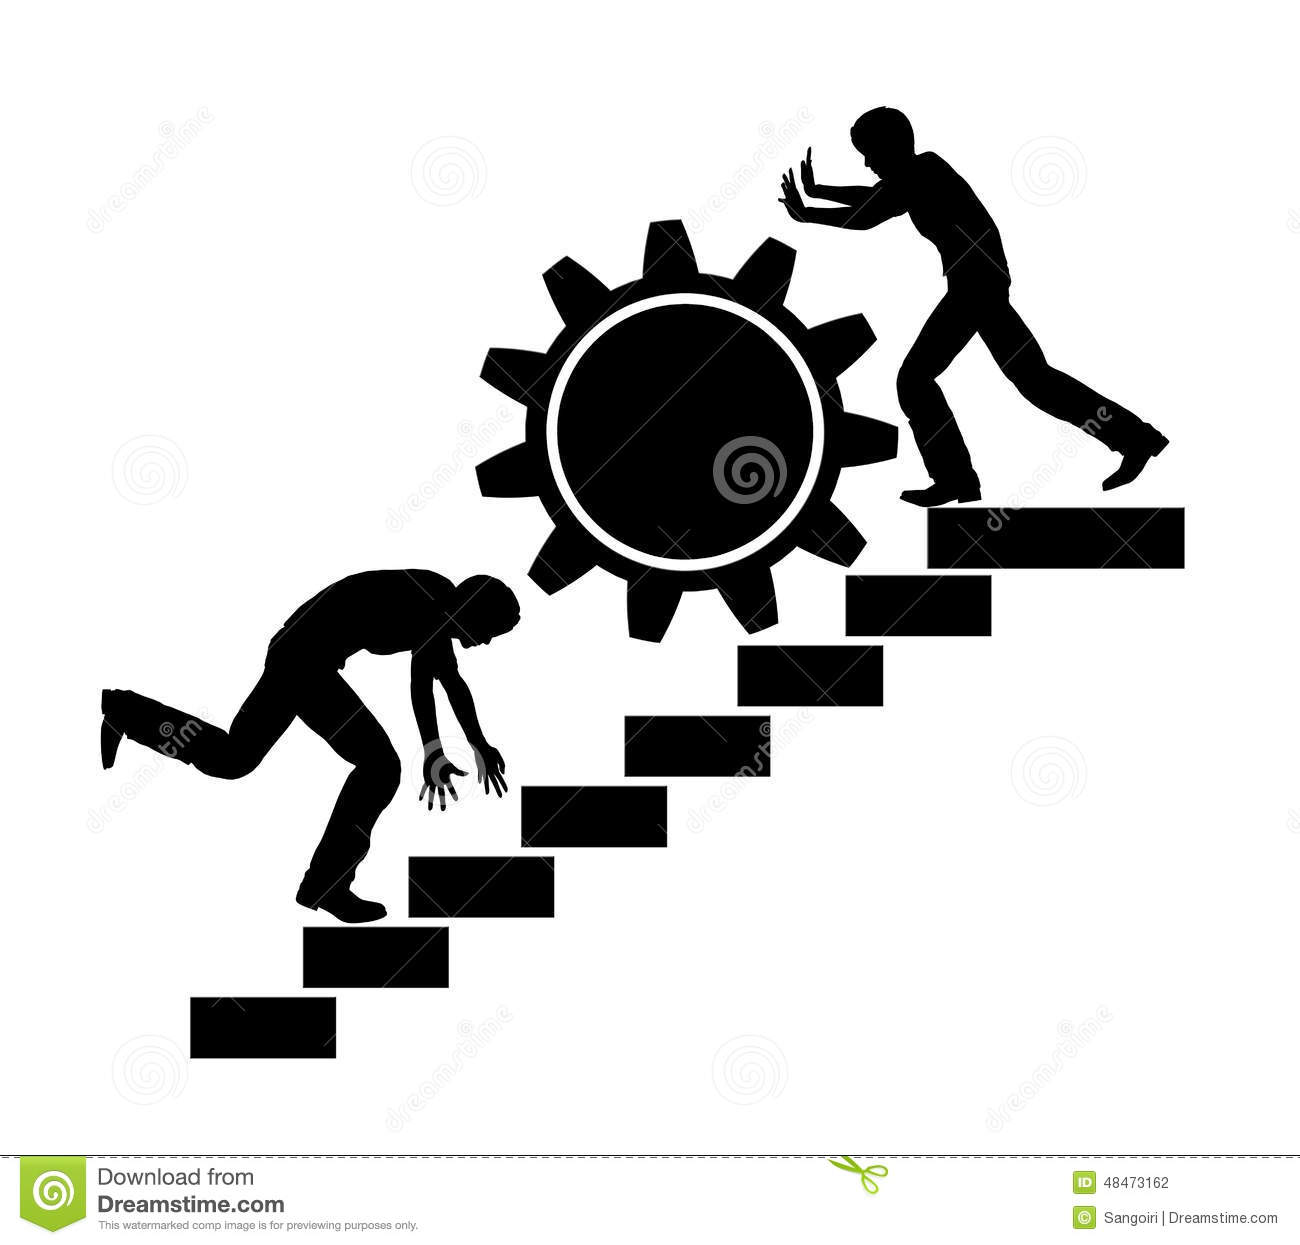 Occupational Health And Safety Stock Illustration - Image: 48473162